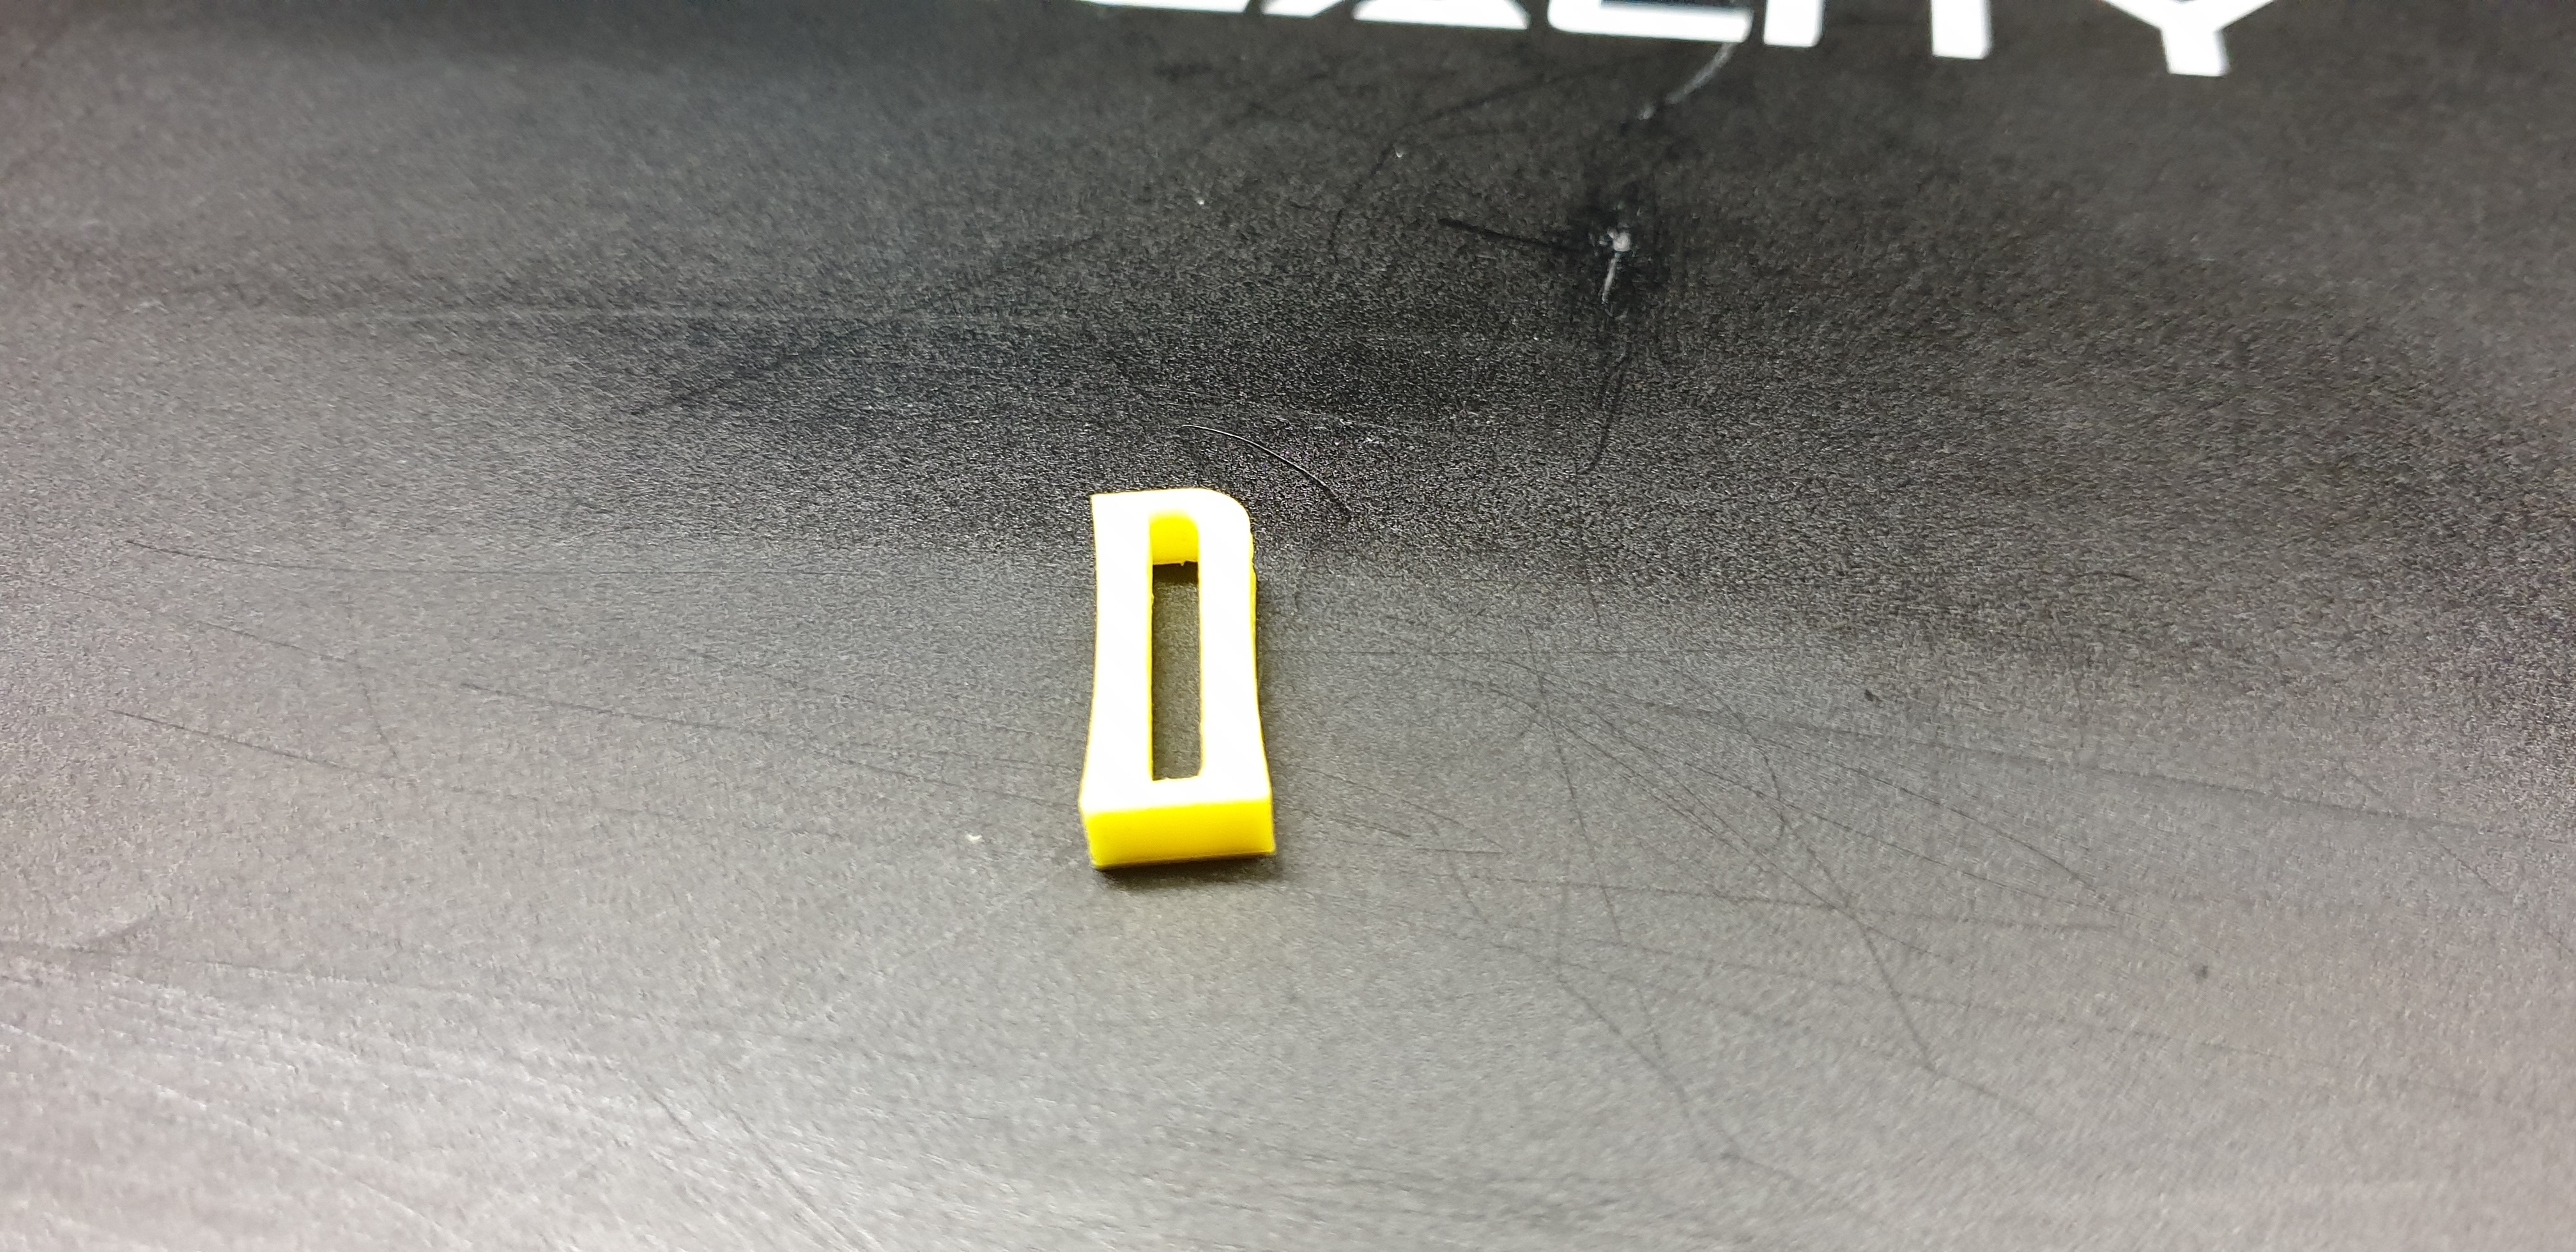 20190925_064925.jpg Download free STL file 20-Pin Connector Tightener • Object to 3D print, helmuteder